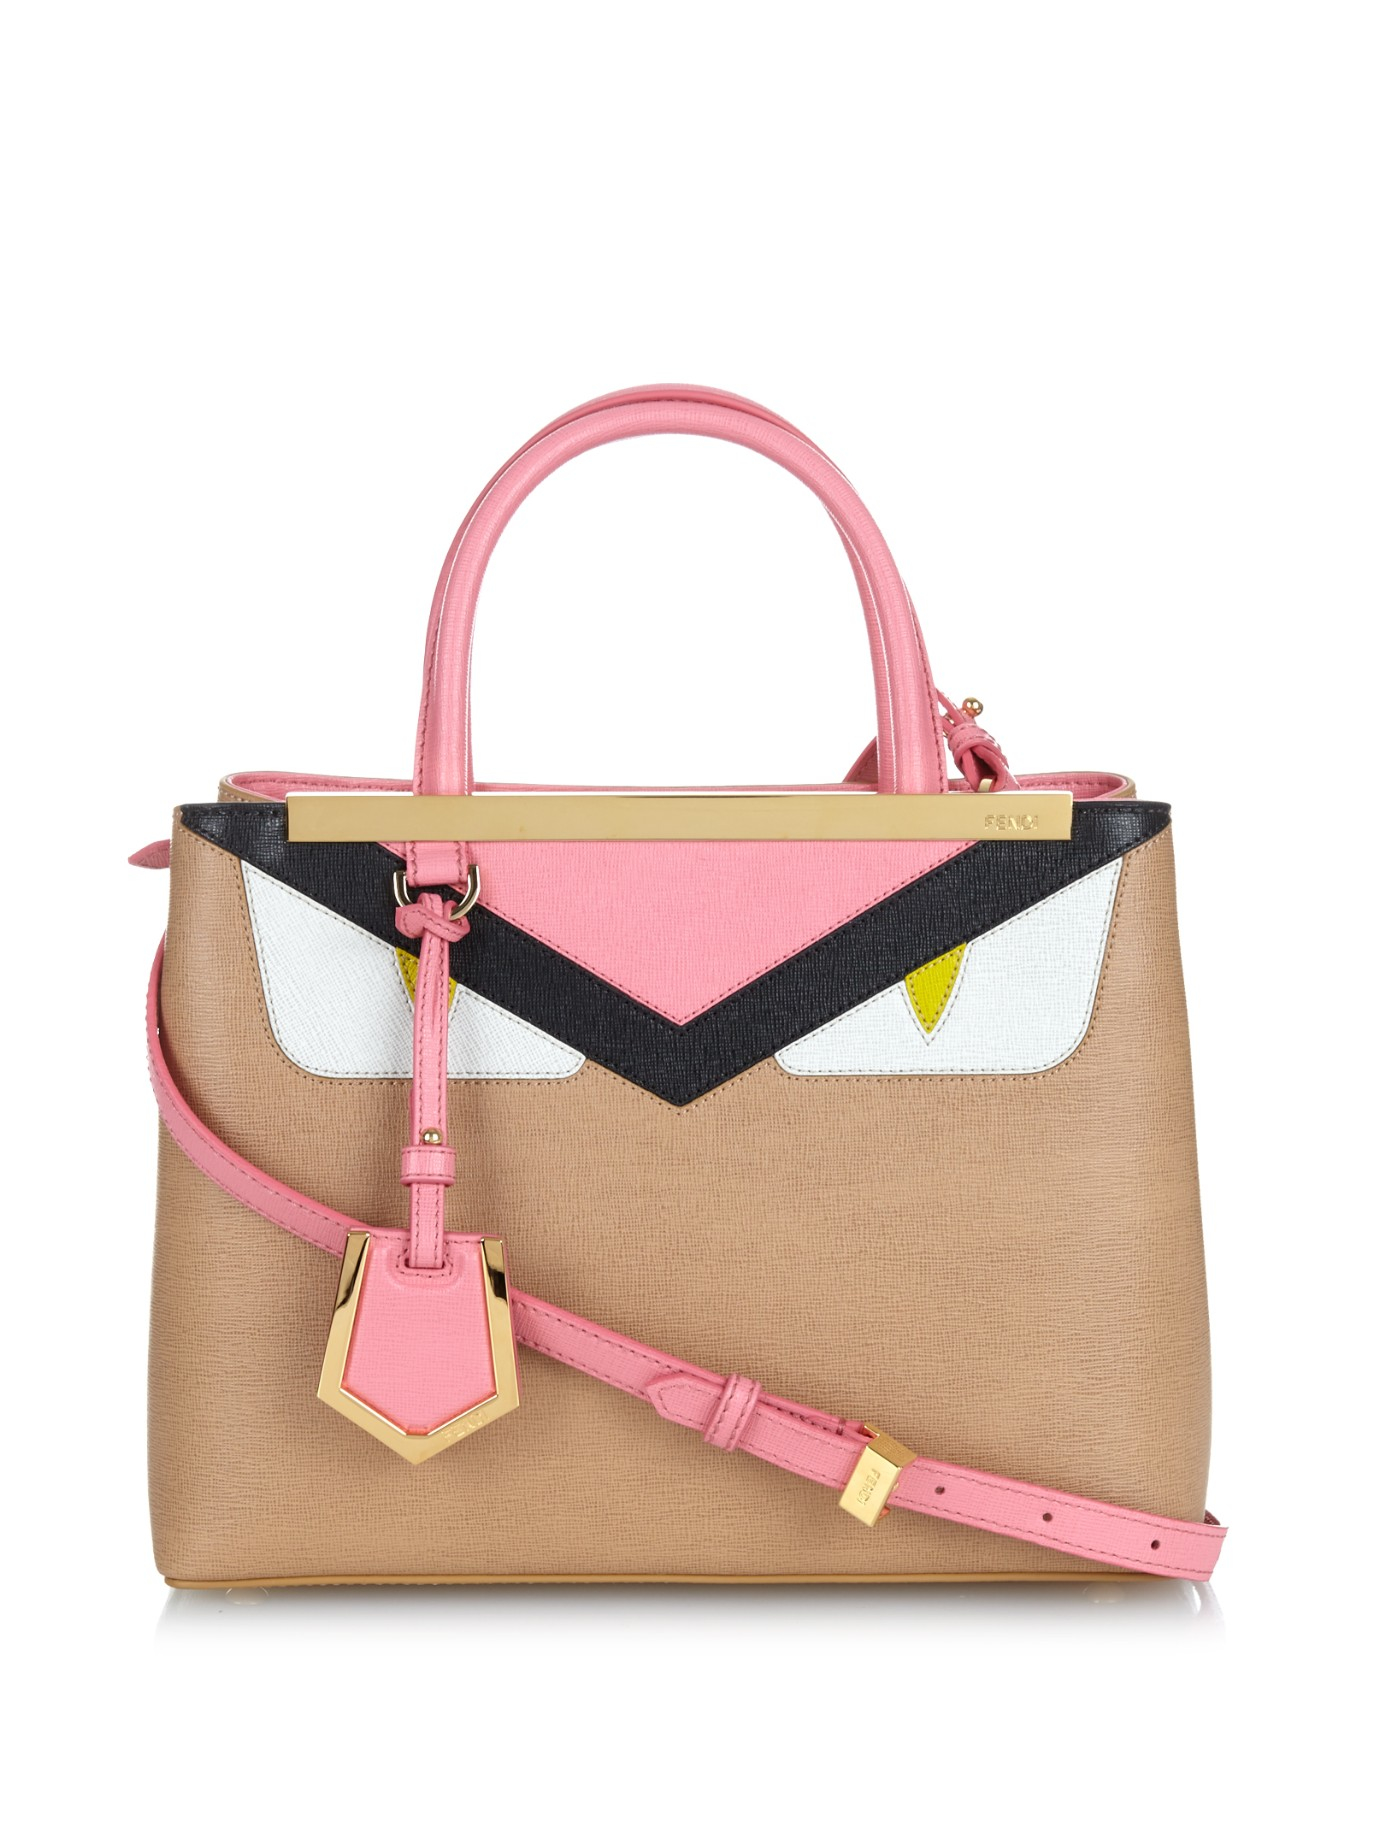 53d097450ef3 ... wholesale gallery. previously sold at matchesfashion womens fendi bag  bugs womens fendi 2jours 86251 ac421